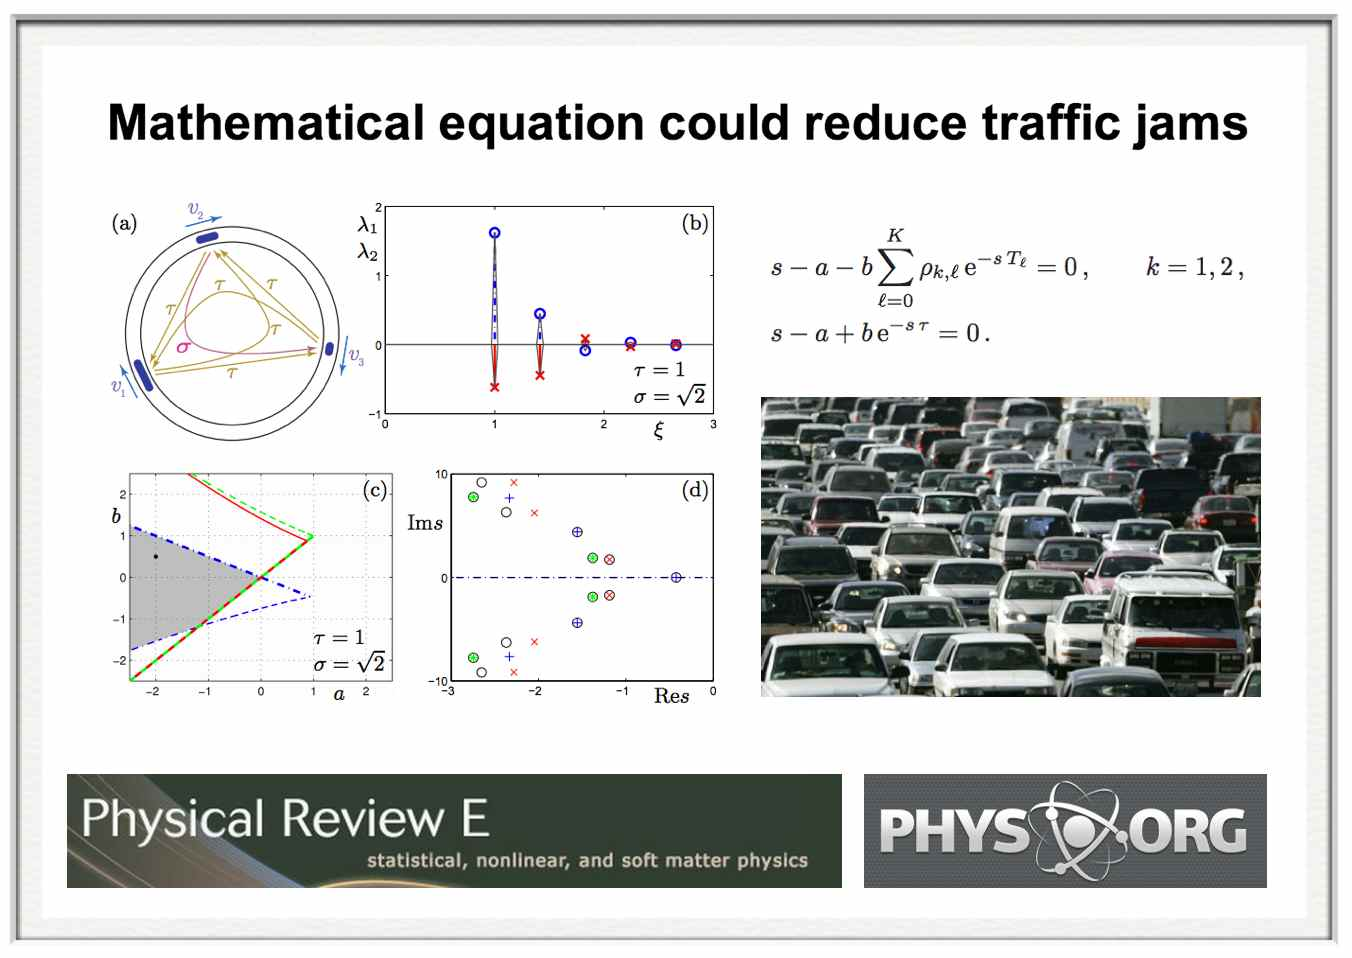 mathematical equation could reduce traffic jams  via phys